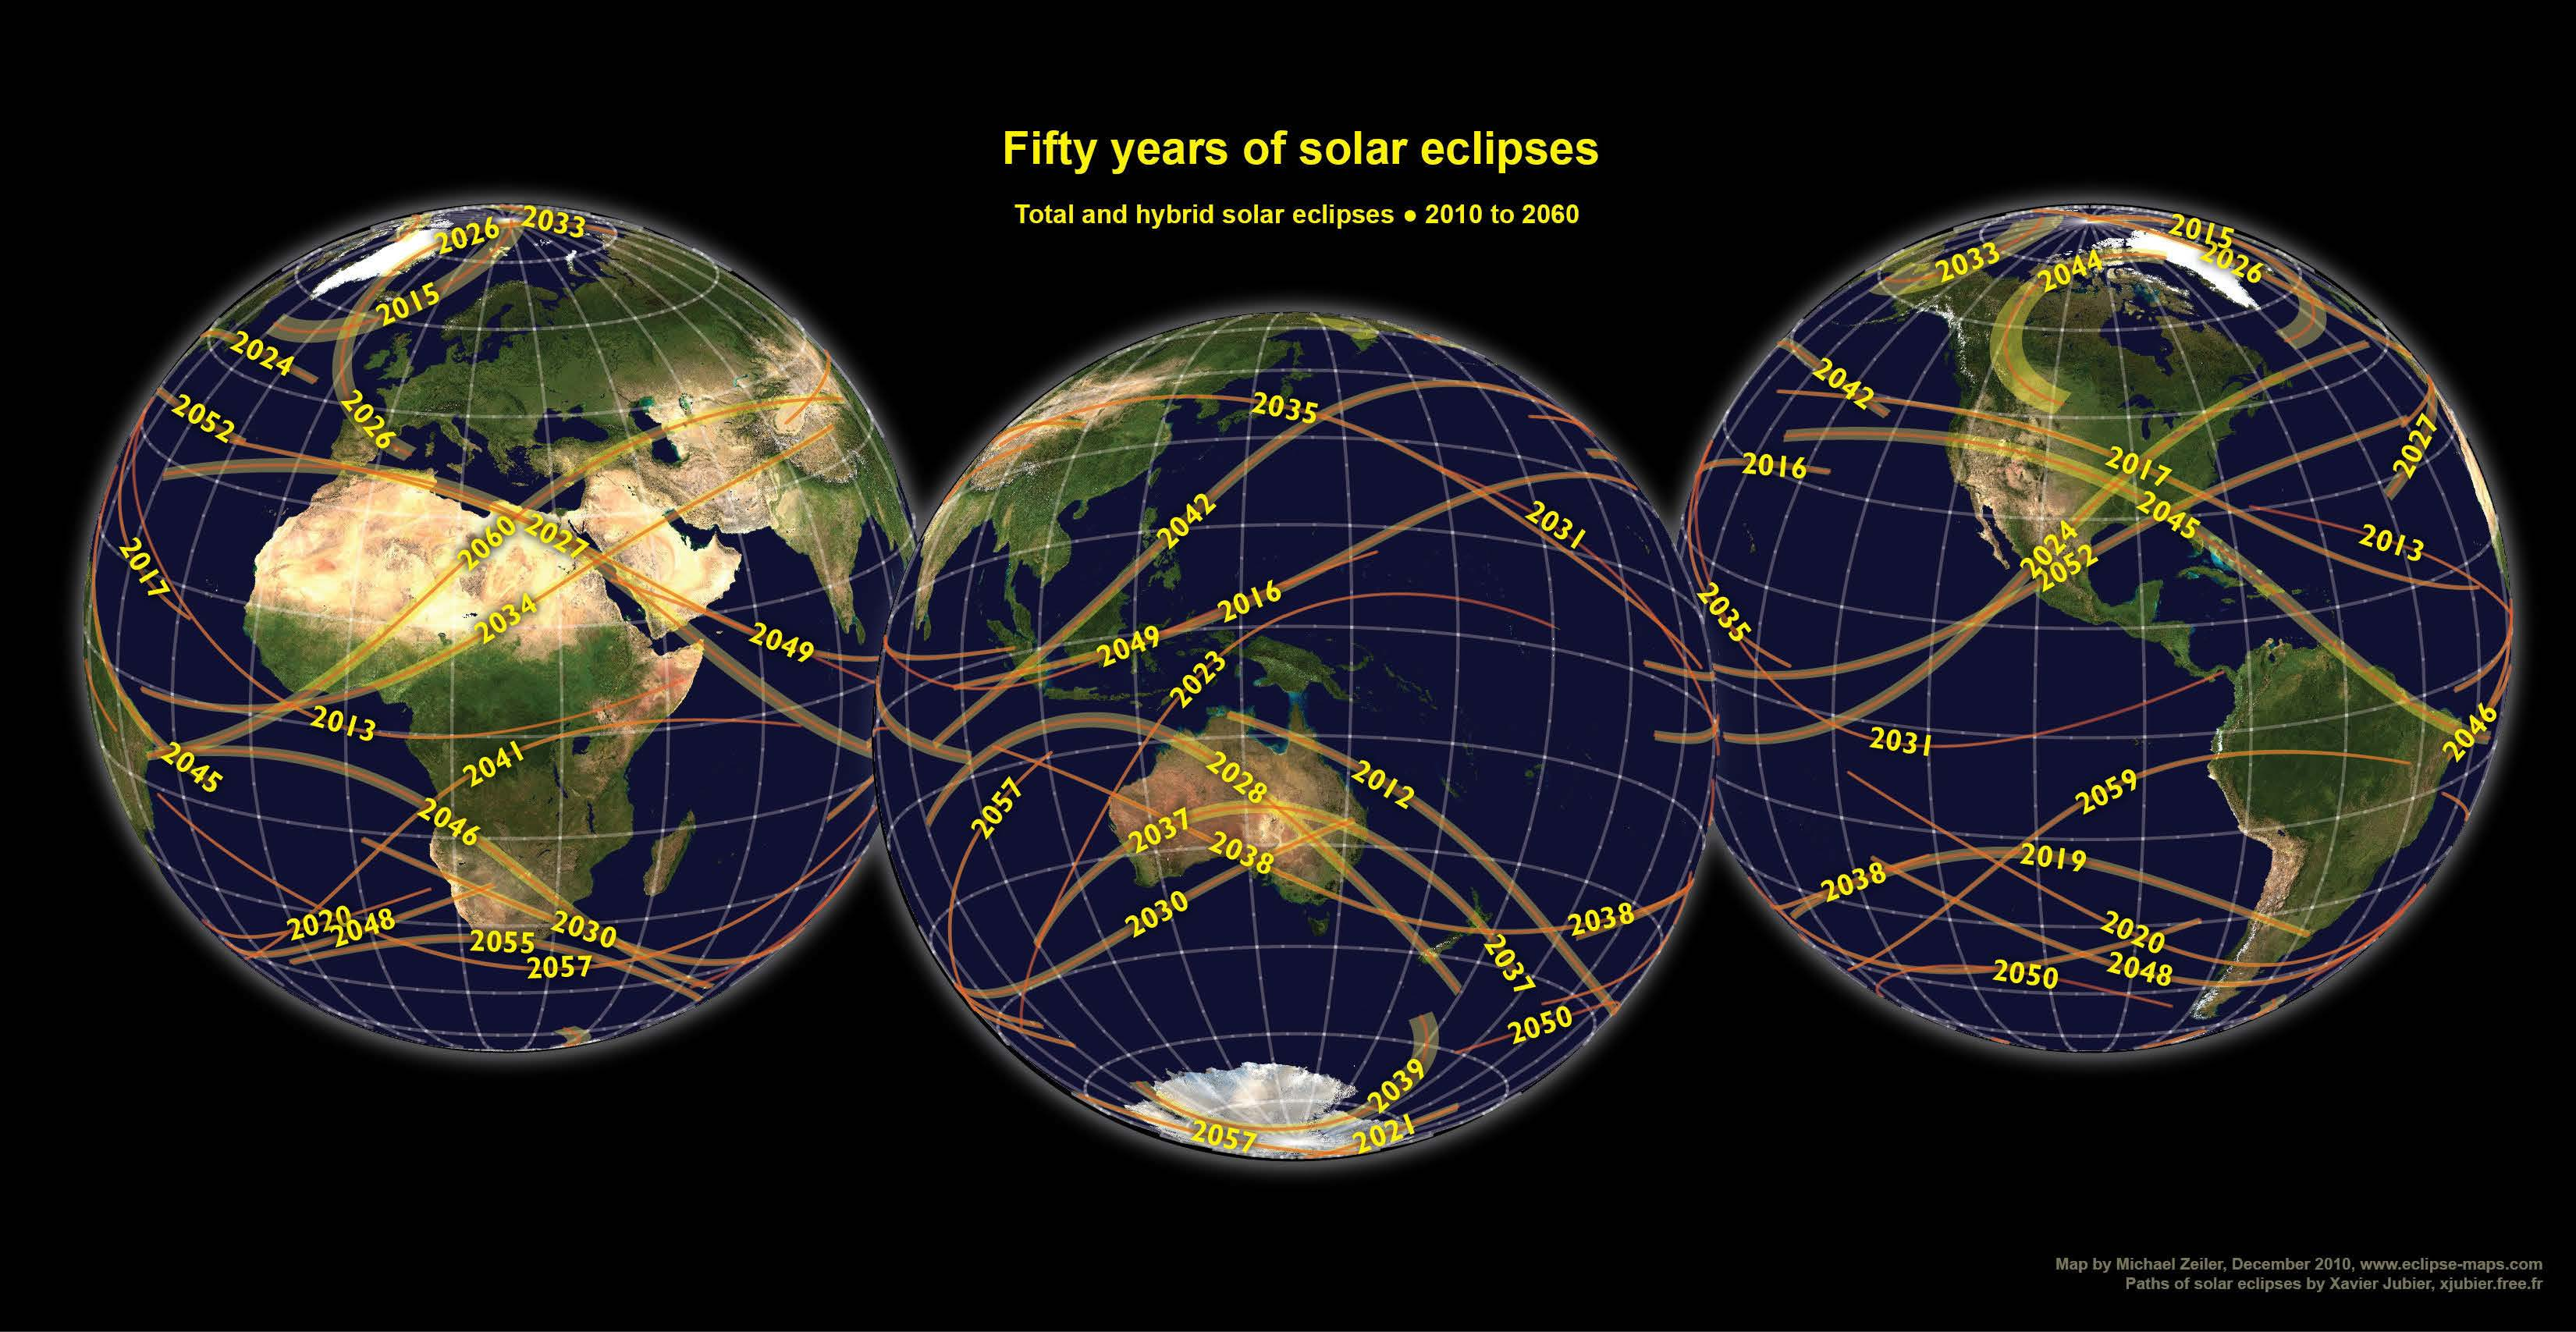 50 years of solar eclipses.